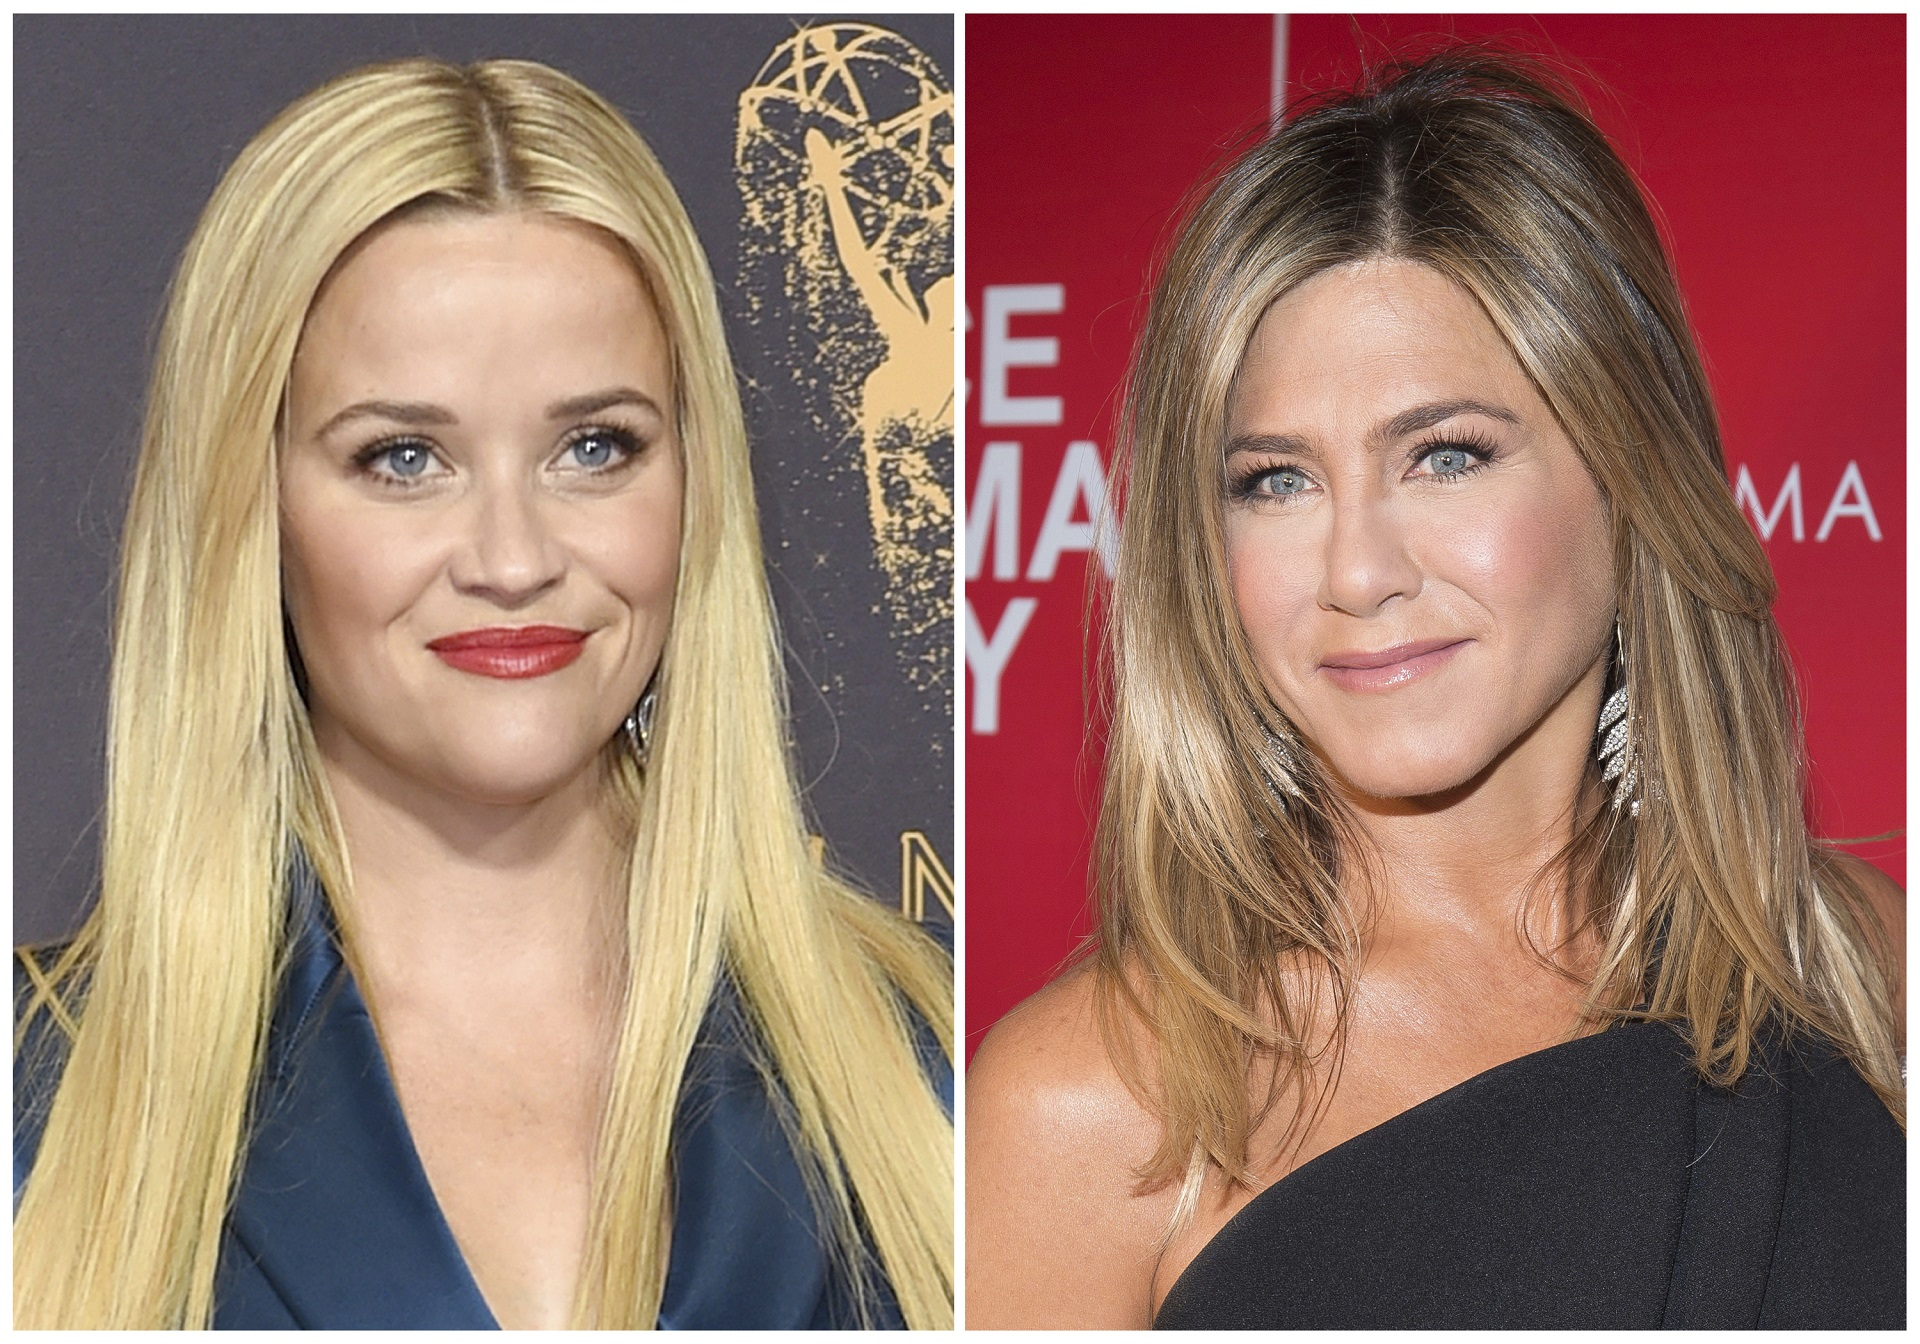 Reese Witherspoon recalls meeting Jennifer Aniston for the first time on 'Friends' set: 'I was really nervous'